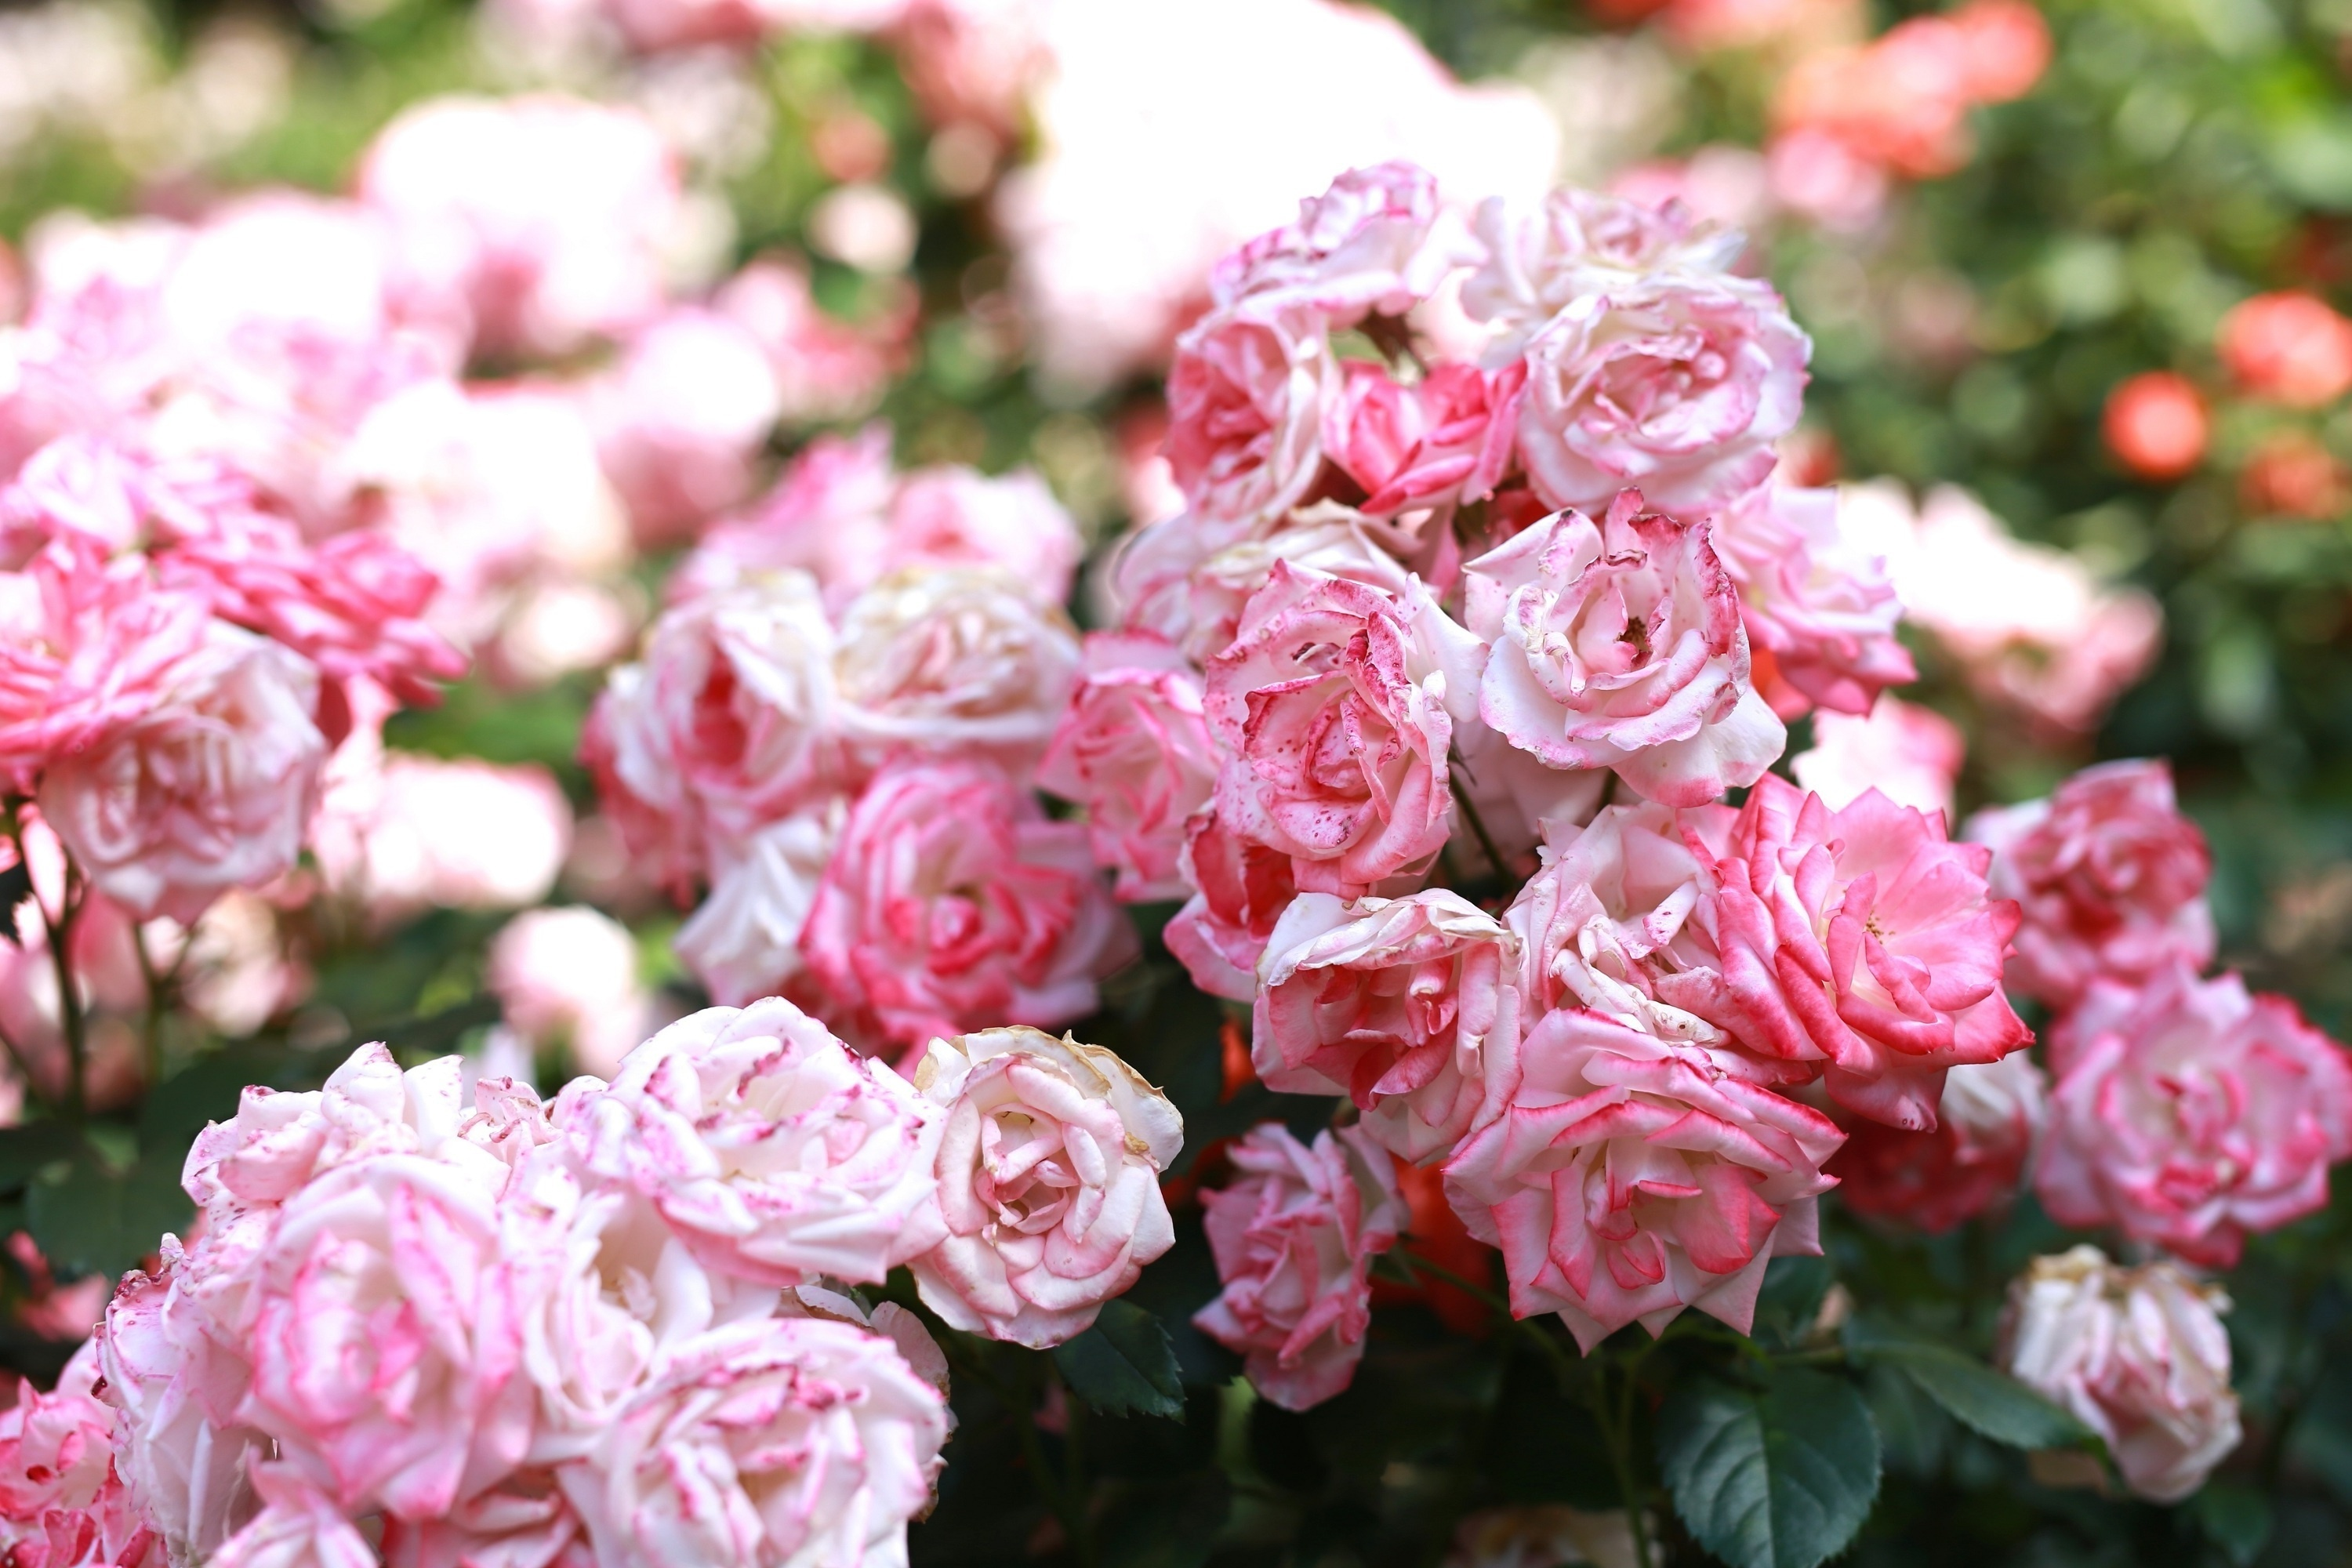 142983 download wallpaper Flowers, Pink, Buds, Bloom, Flowering, Roses screensavers and pictures for free